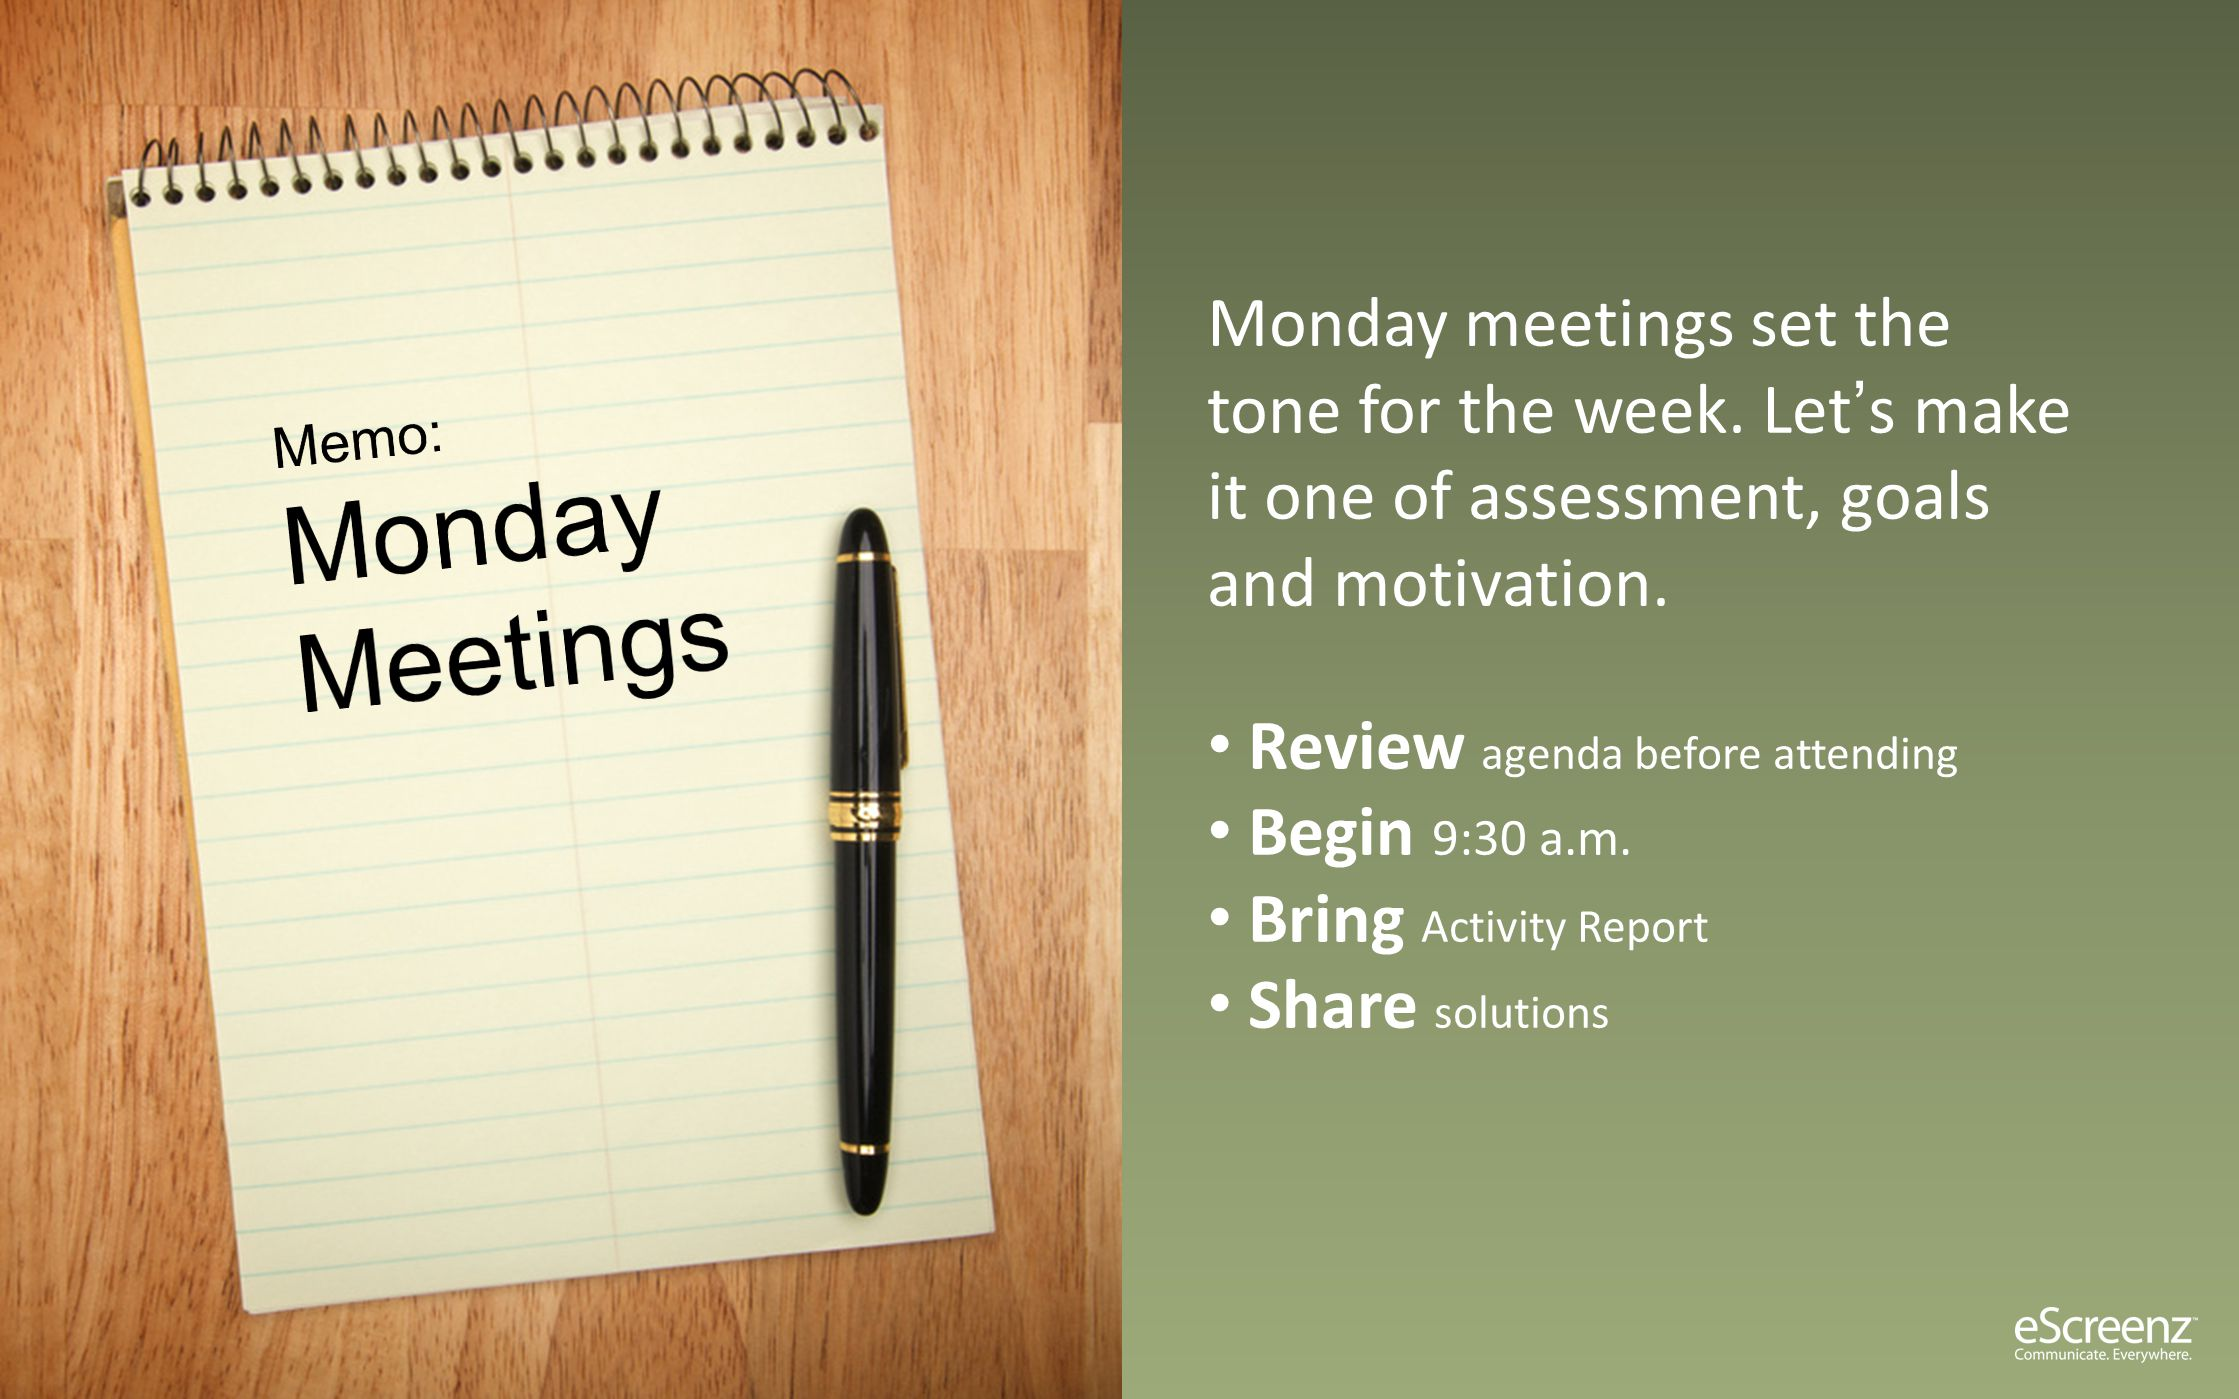 Monday meetings set the tone for the week. Let's make it one of assessment, goals and motivation.